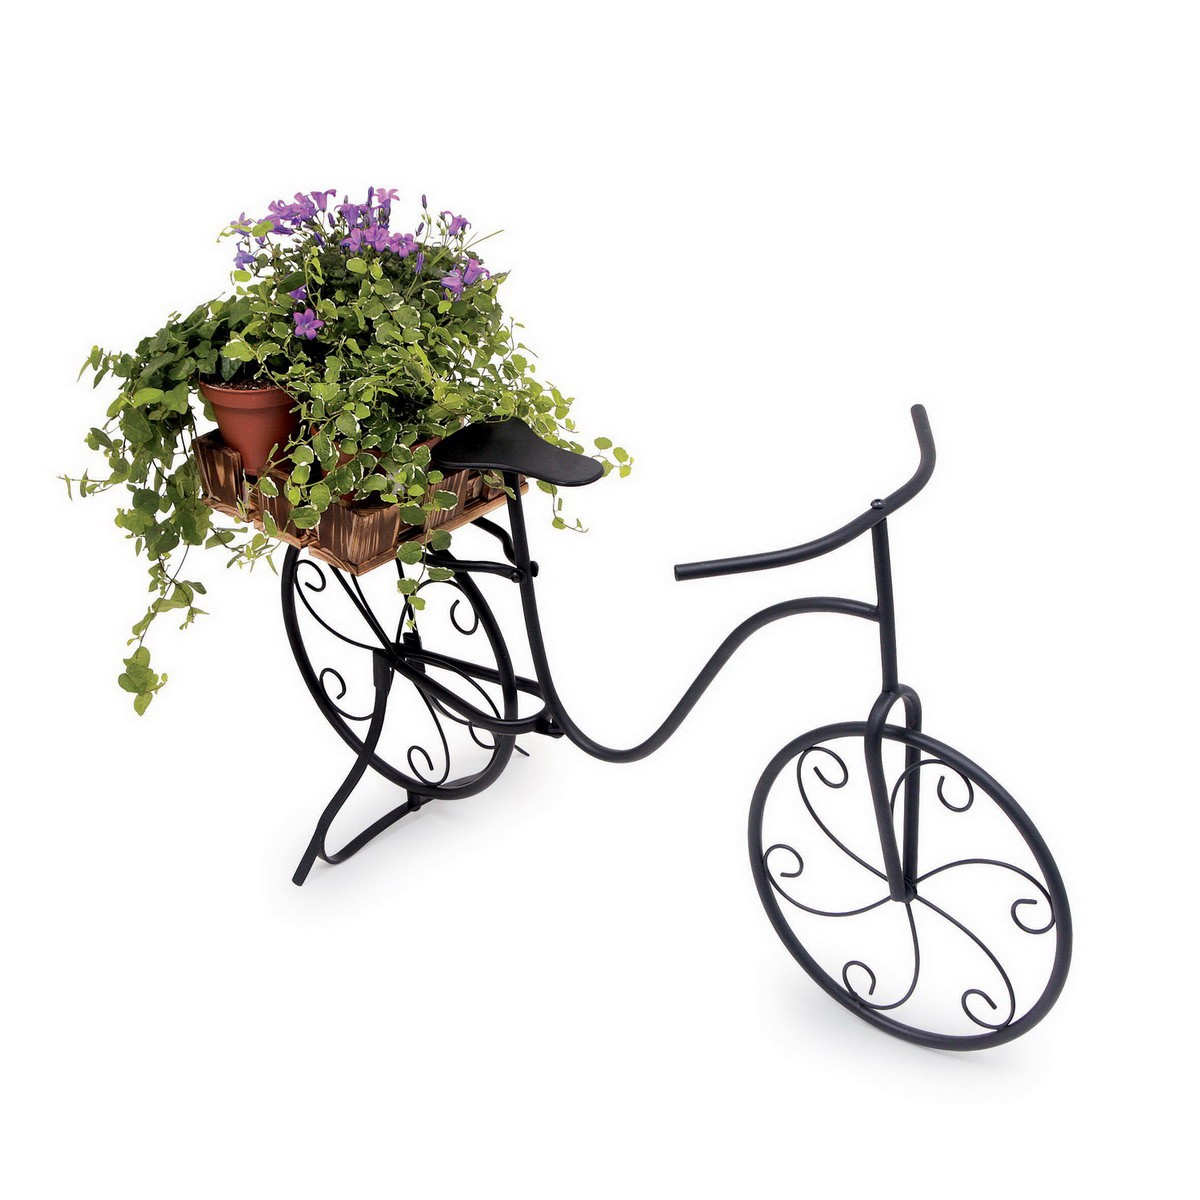 small foot 5705 deko pflanzen fahrrad marlene mit blumenkorb spielzeug top marken small foot. Black Bedroom Furniture Sets. Home Design Ideas